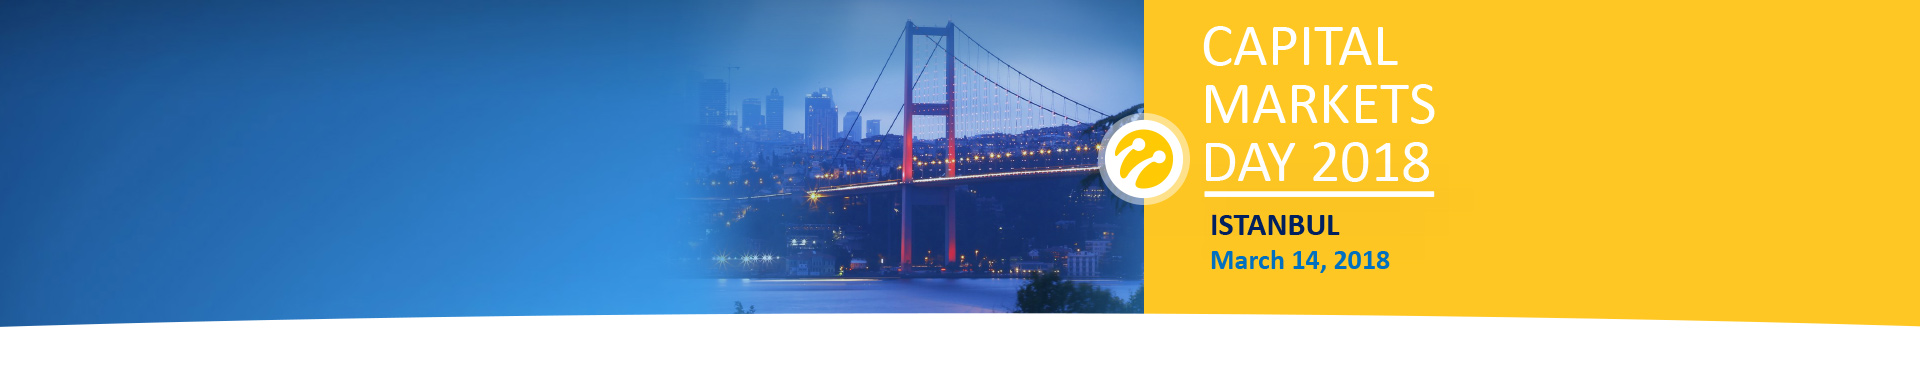 Save the Date Turkcell Capital Markets Day 2018